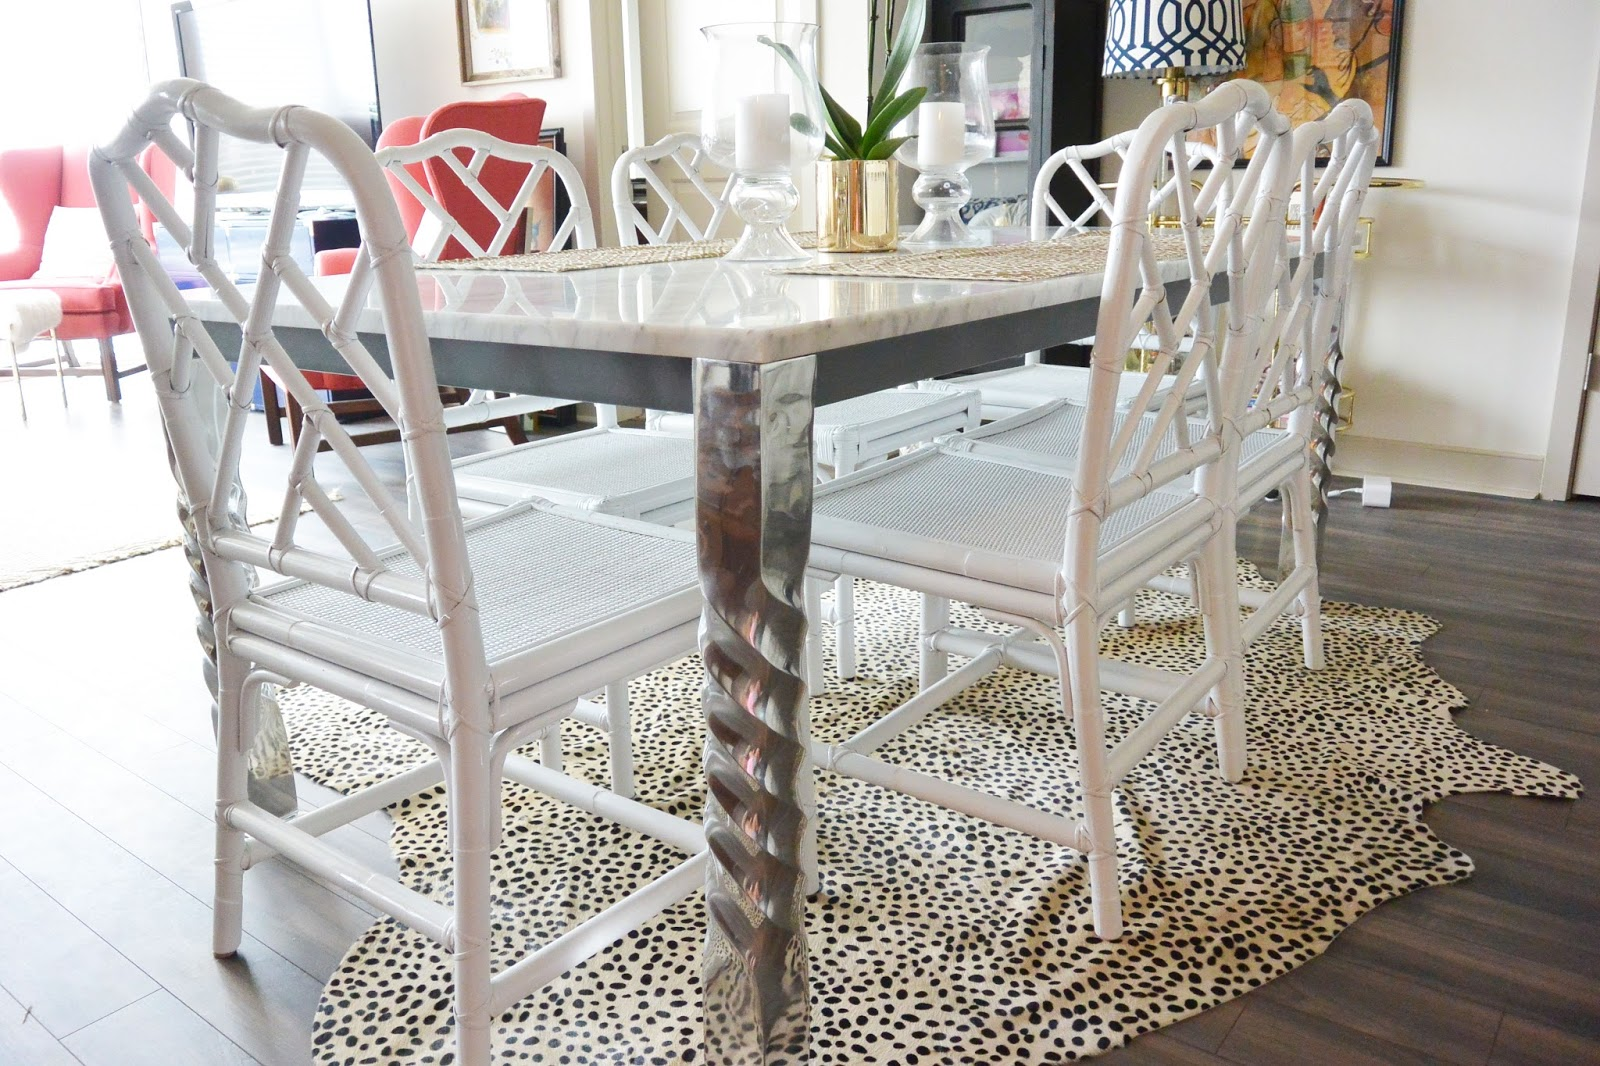 Life with a Dash of Whimsy: Chinese Chippendale Chairs DIY